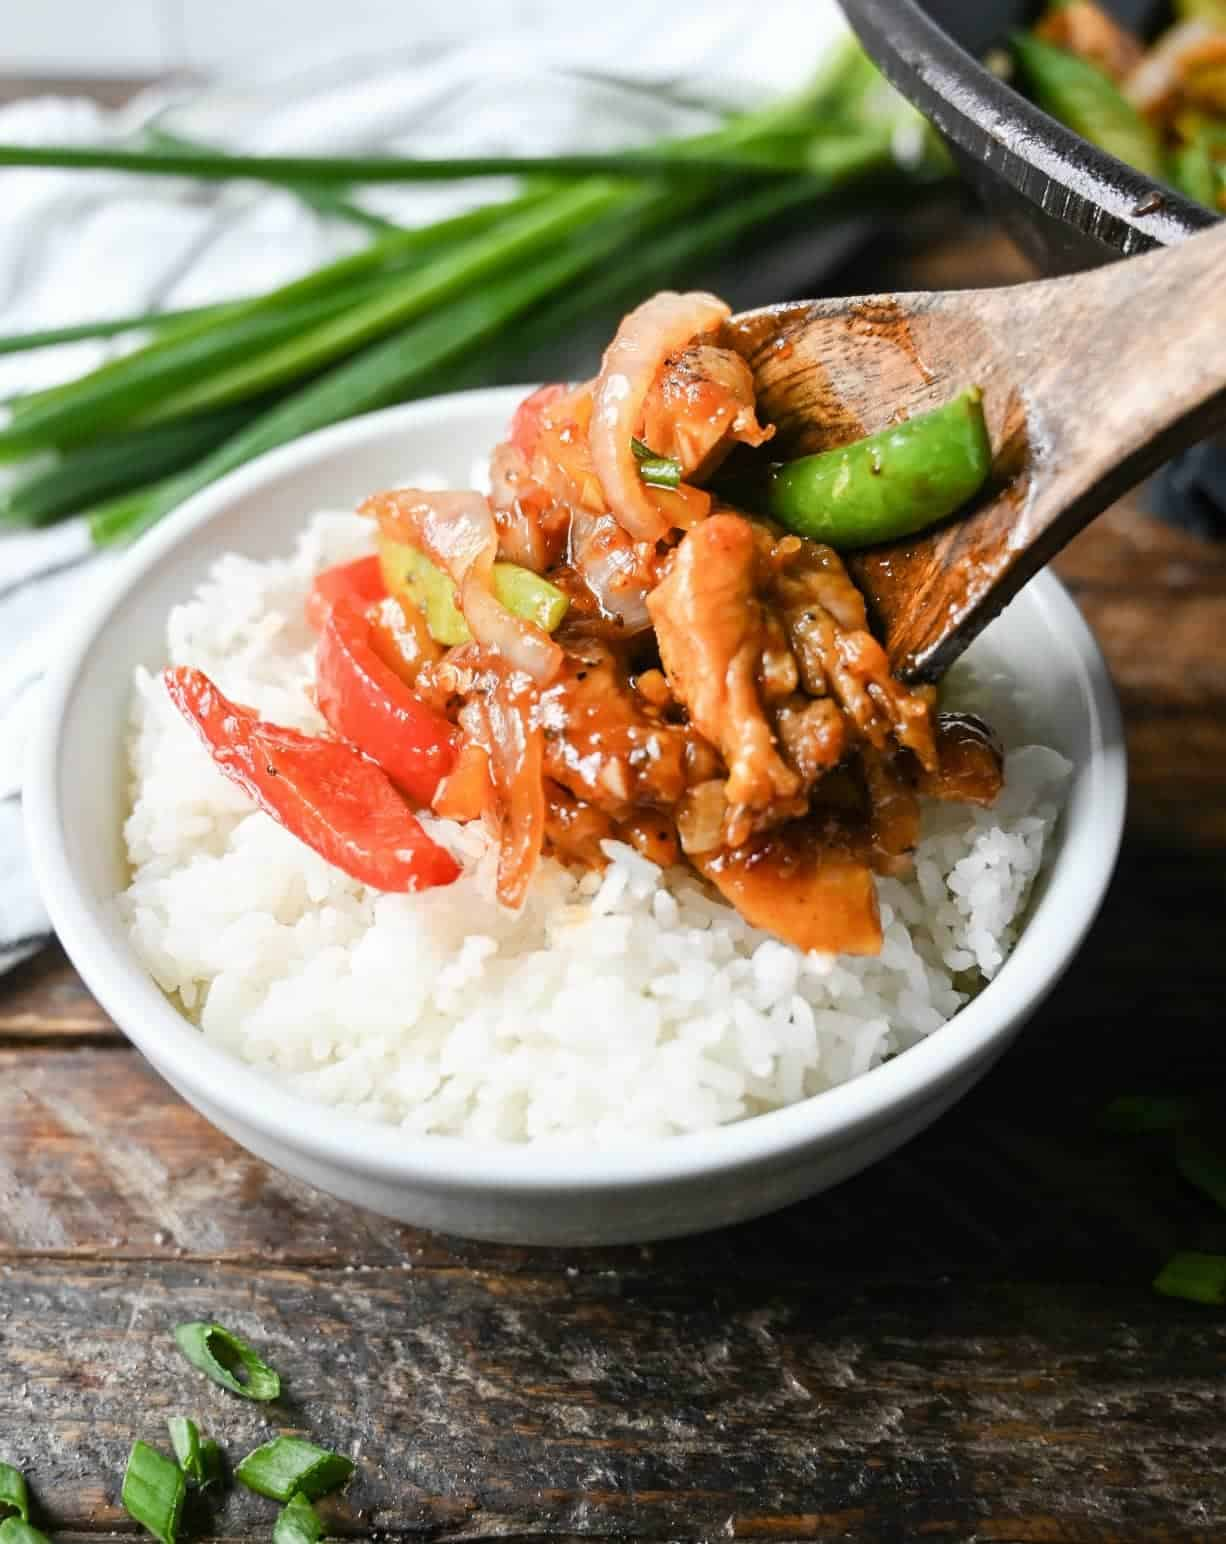 Sweet n spicy chicken stir fry served with a wooden spoon onto wgite rice.